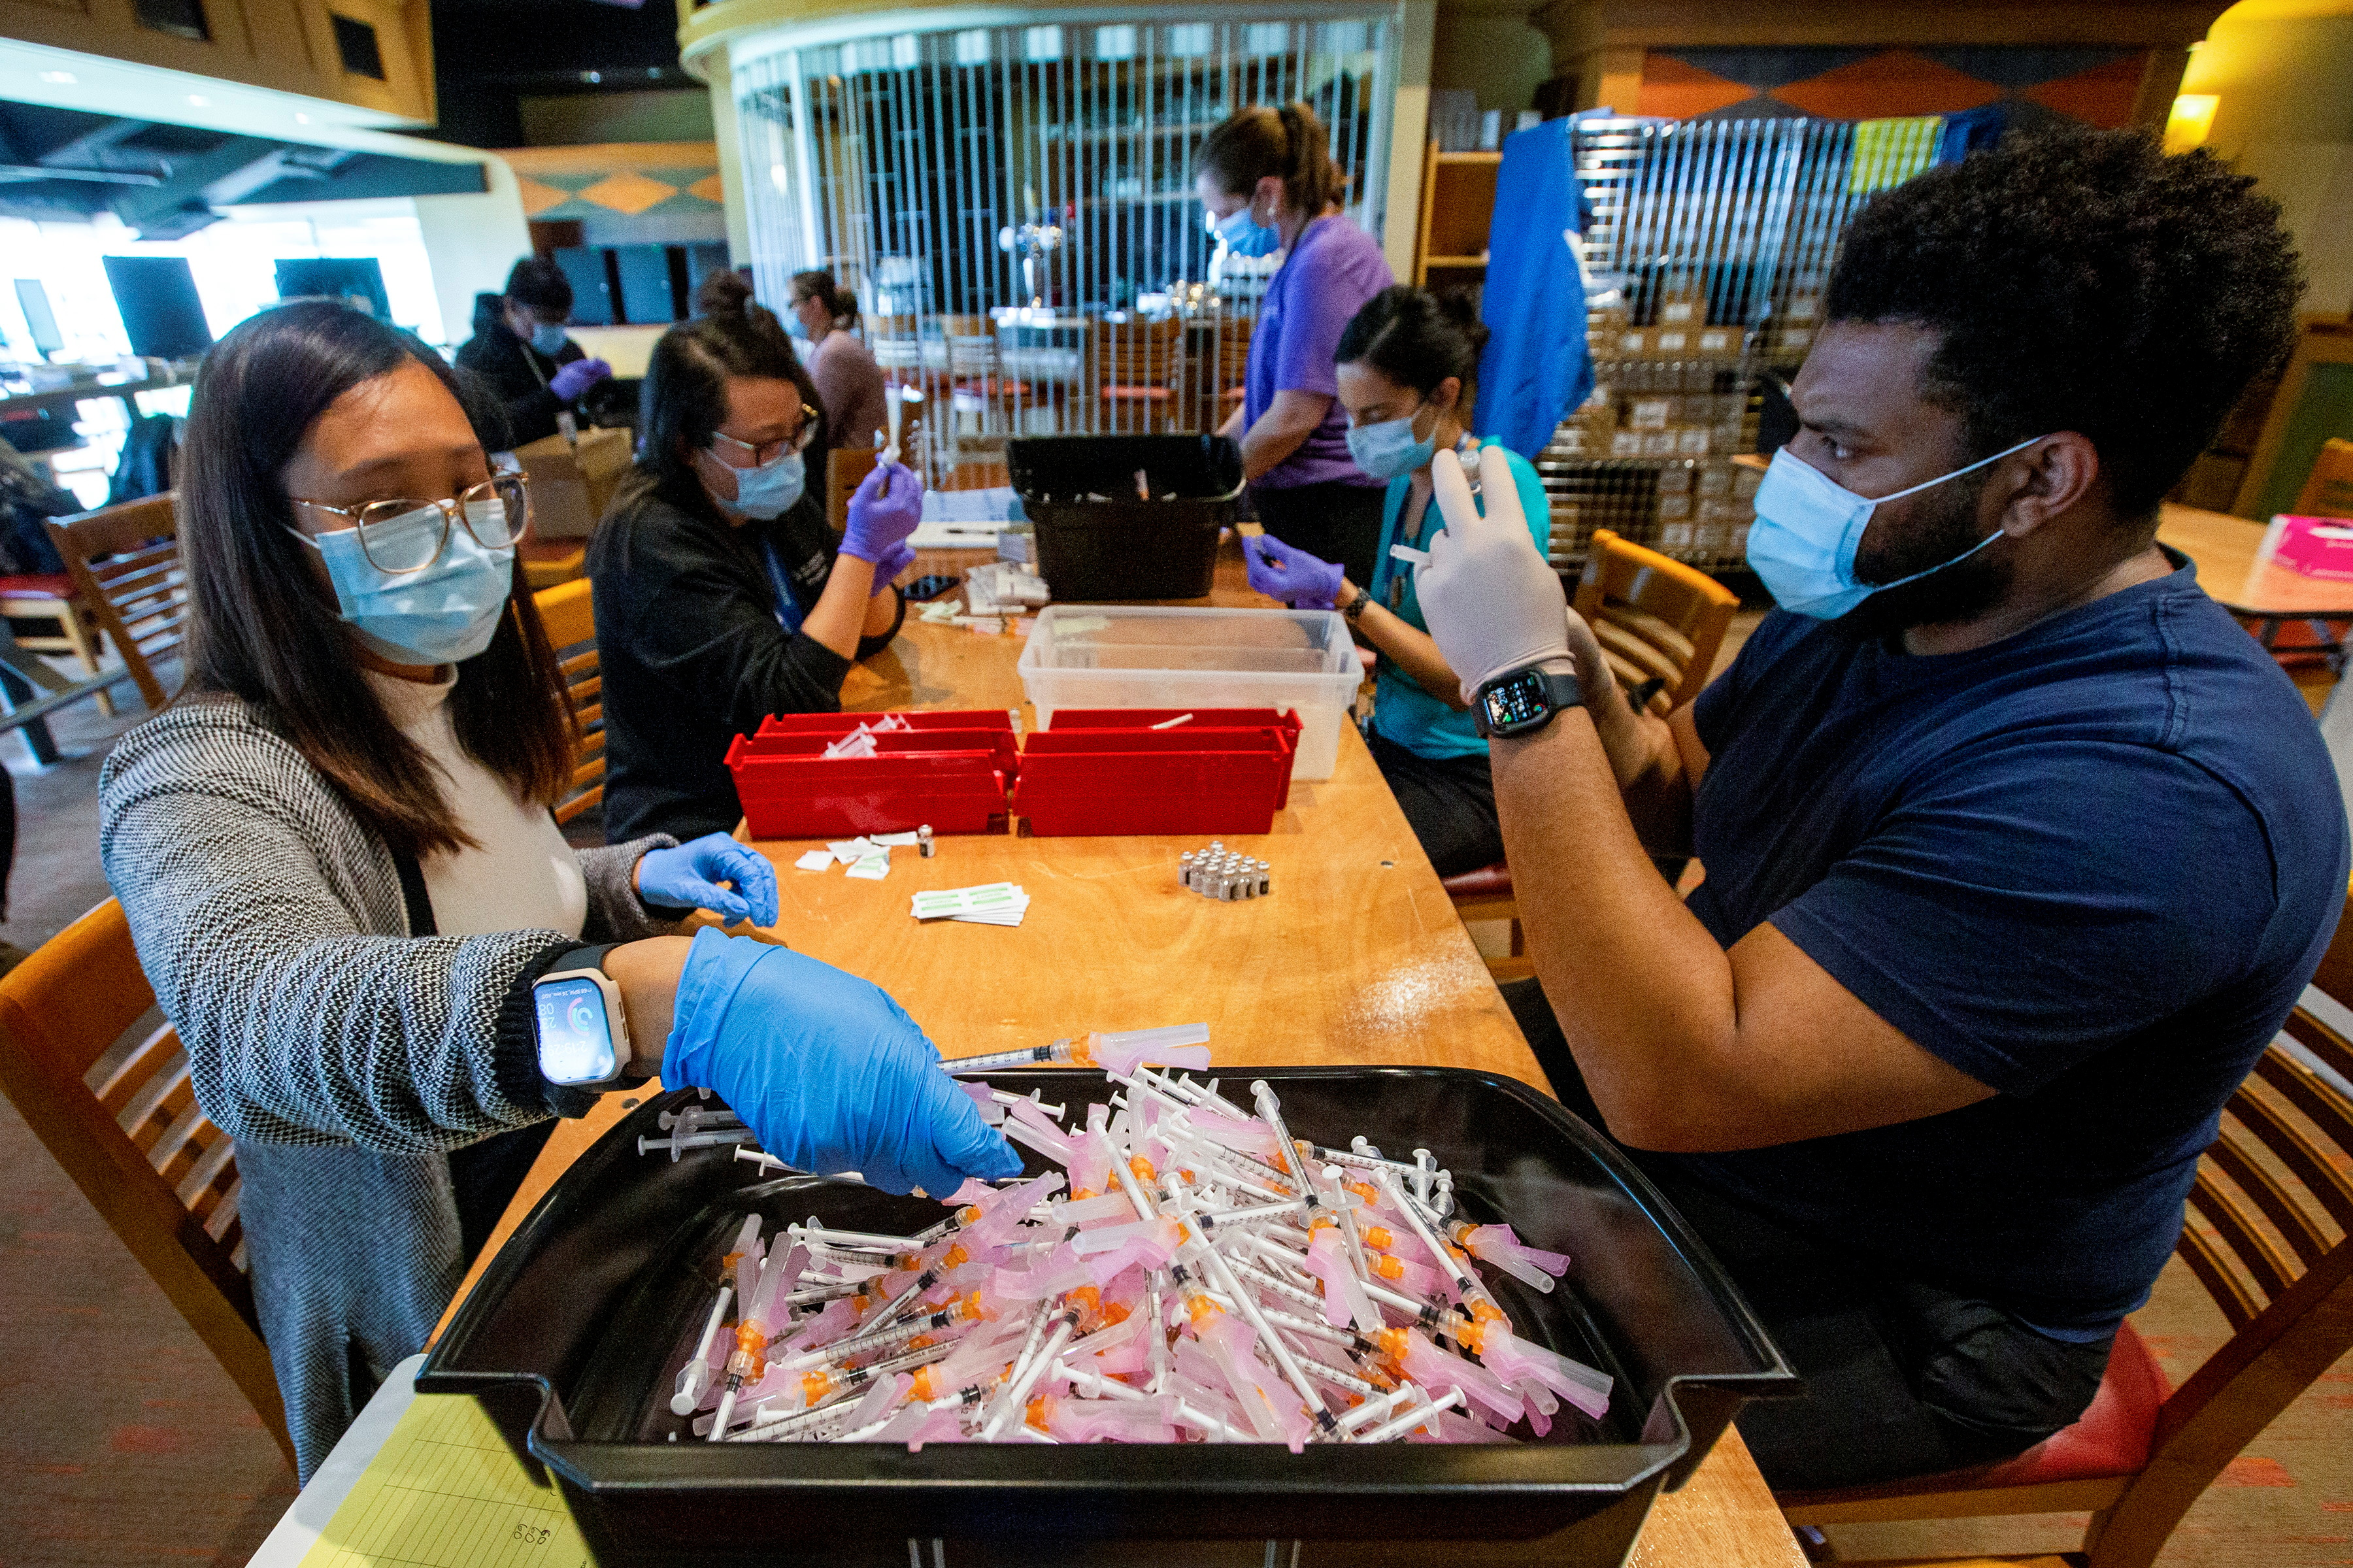 Healthcare workers prepare doses of the Pfizer/BioNTech coronavirus disease (COVID-19) vaccine, which was authorized by Canada to be used for children aged 12 to 15, at Woodbine Racetrack pop-up vaccine clinic in Toronto, Ontario, Canada May 5, 2021. REUTERS/Carlos Osorio